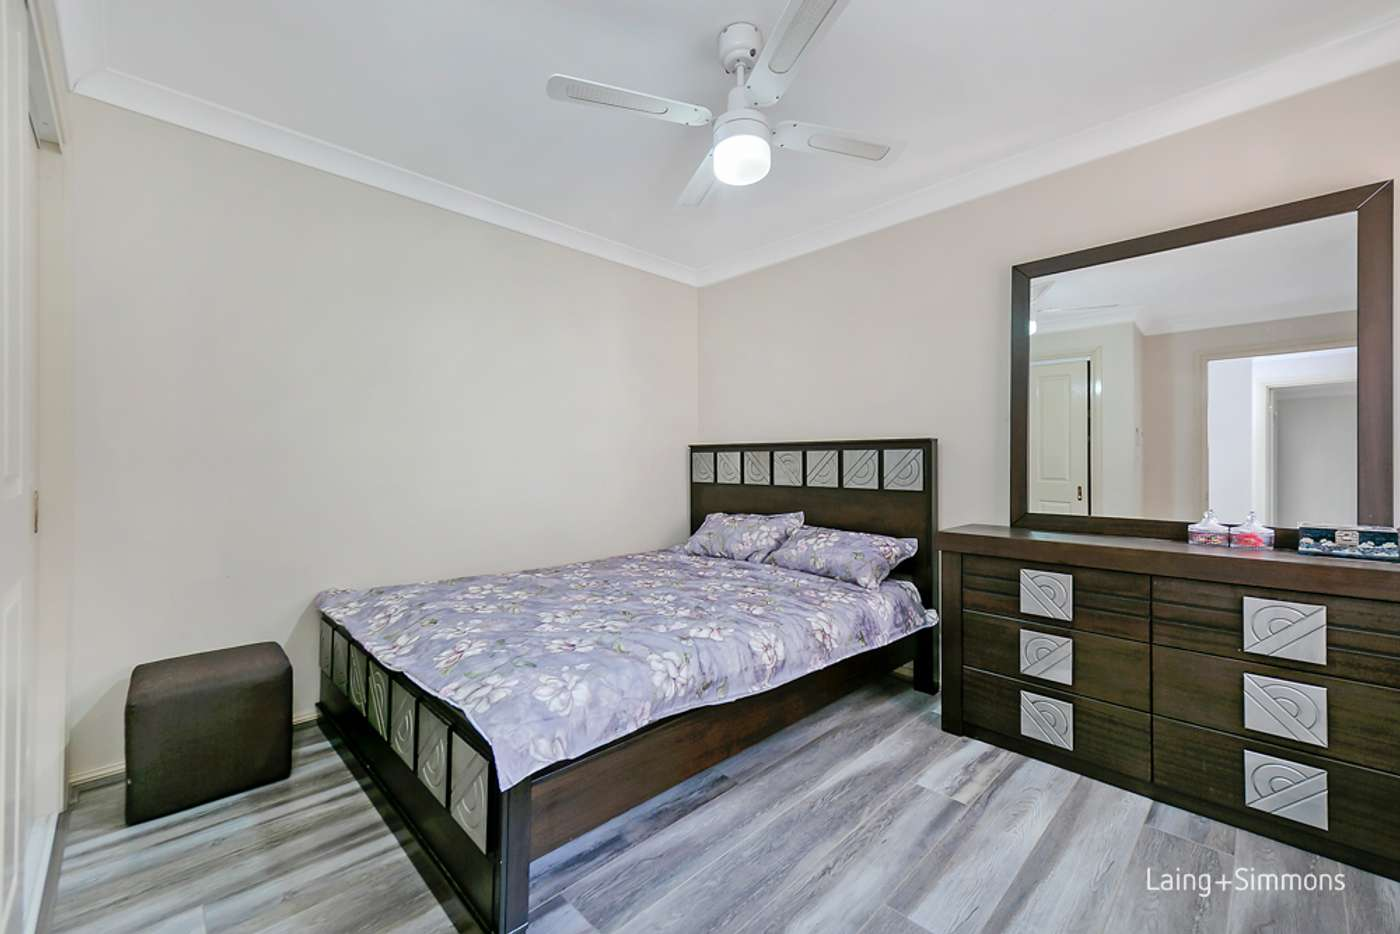 Fifth view of Homely villa listing, 6/15 O'Brien Street, Mount Druitt NSW 2770